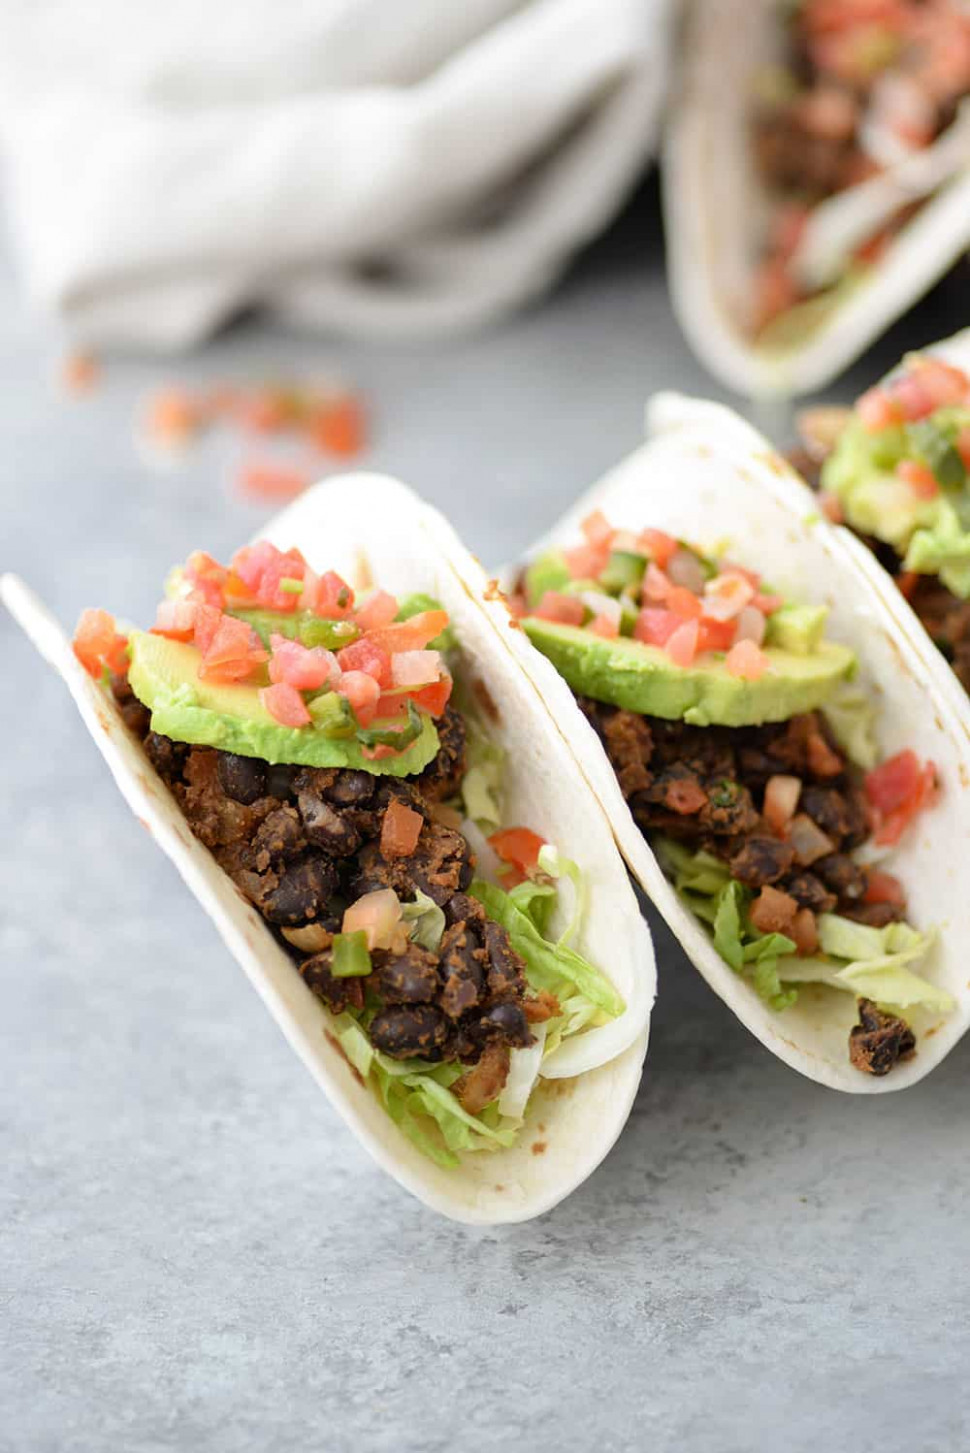 14 Minute Vegan Black Bean Tacos - recipe vegetarian tacos filling